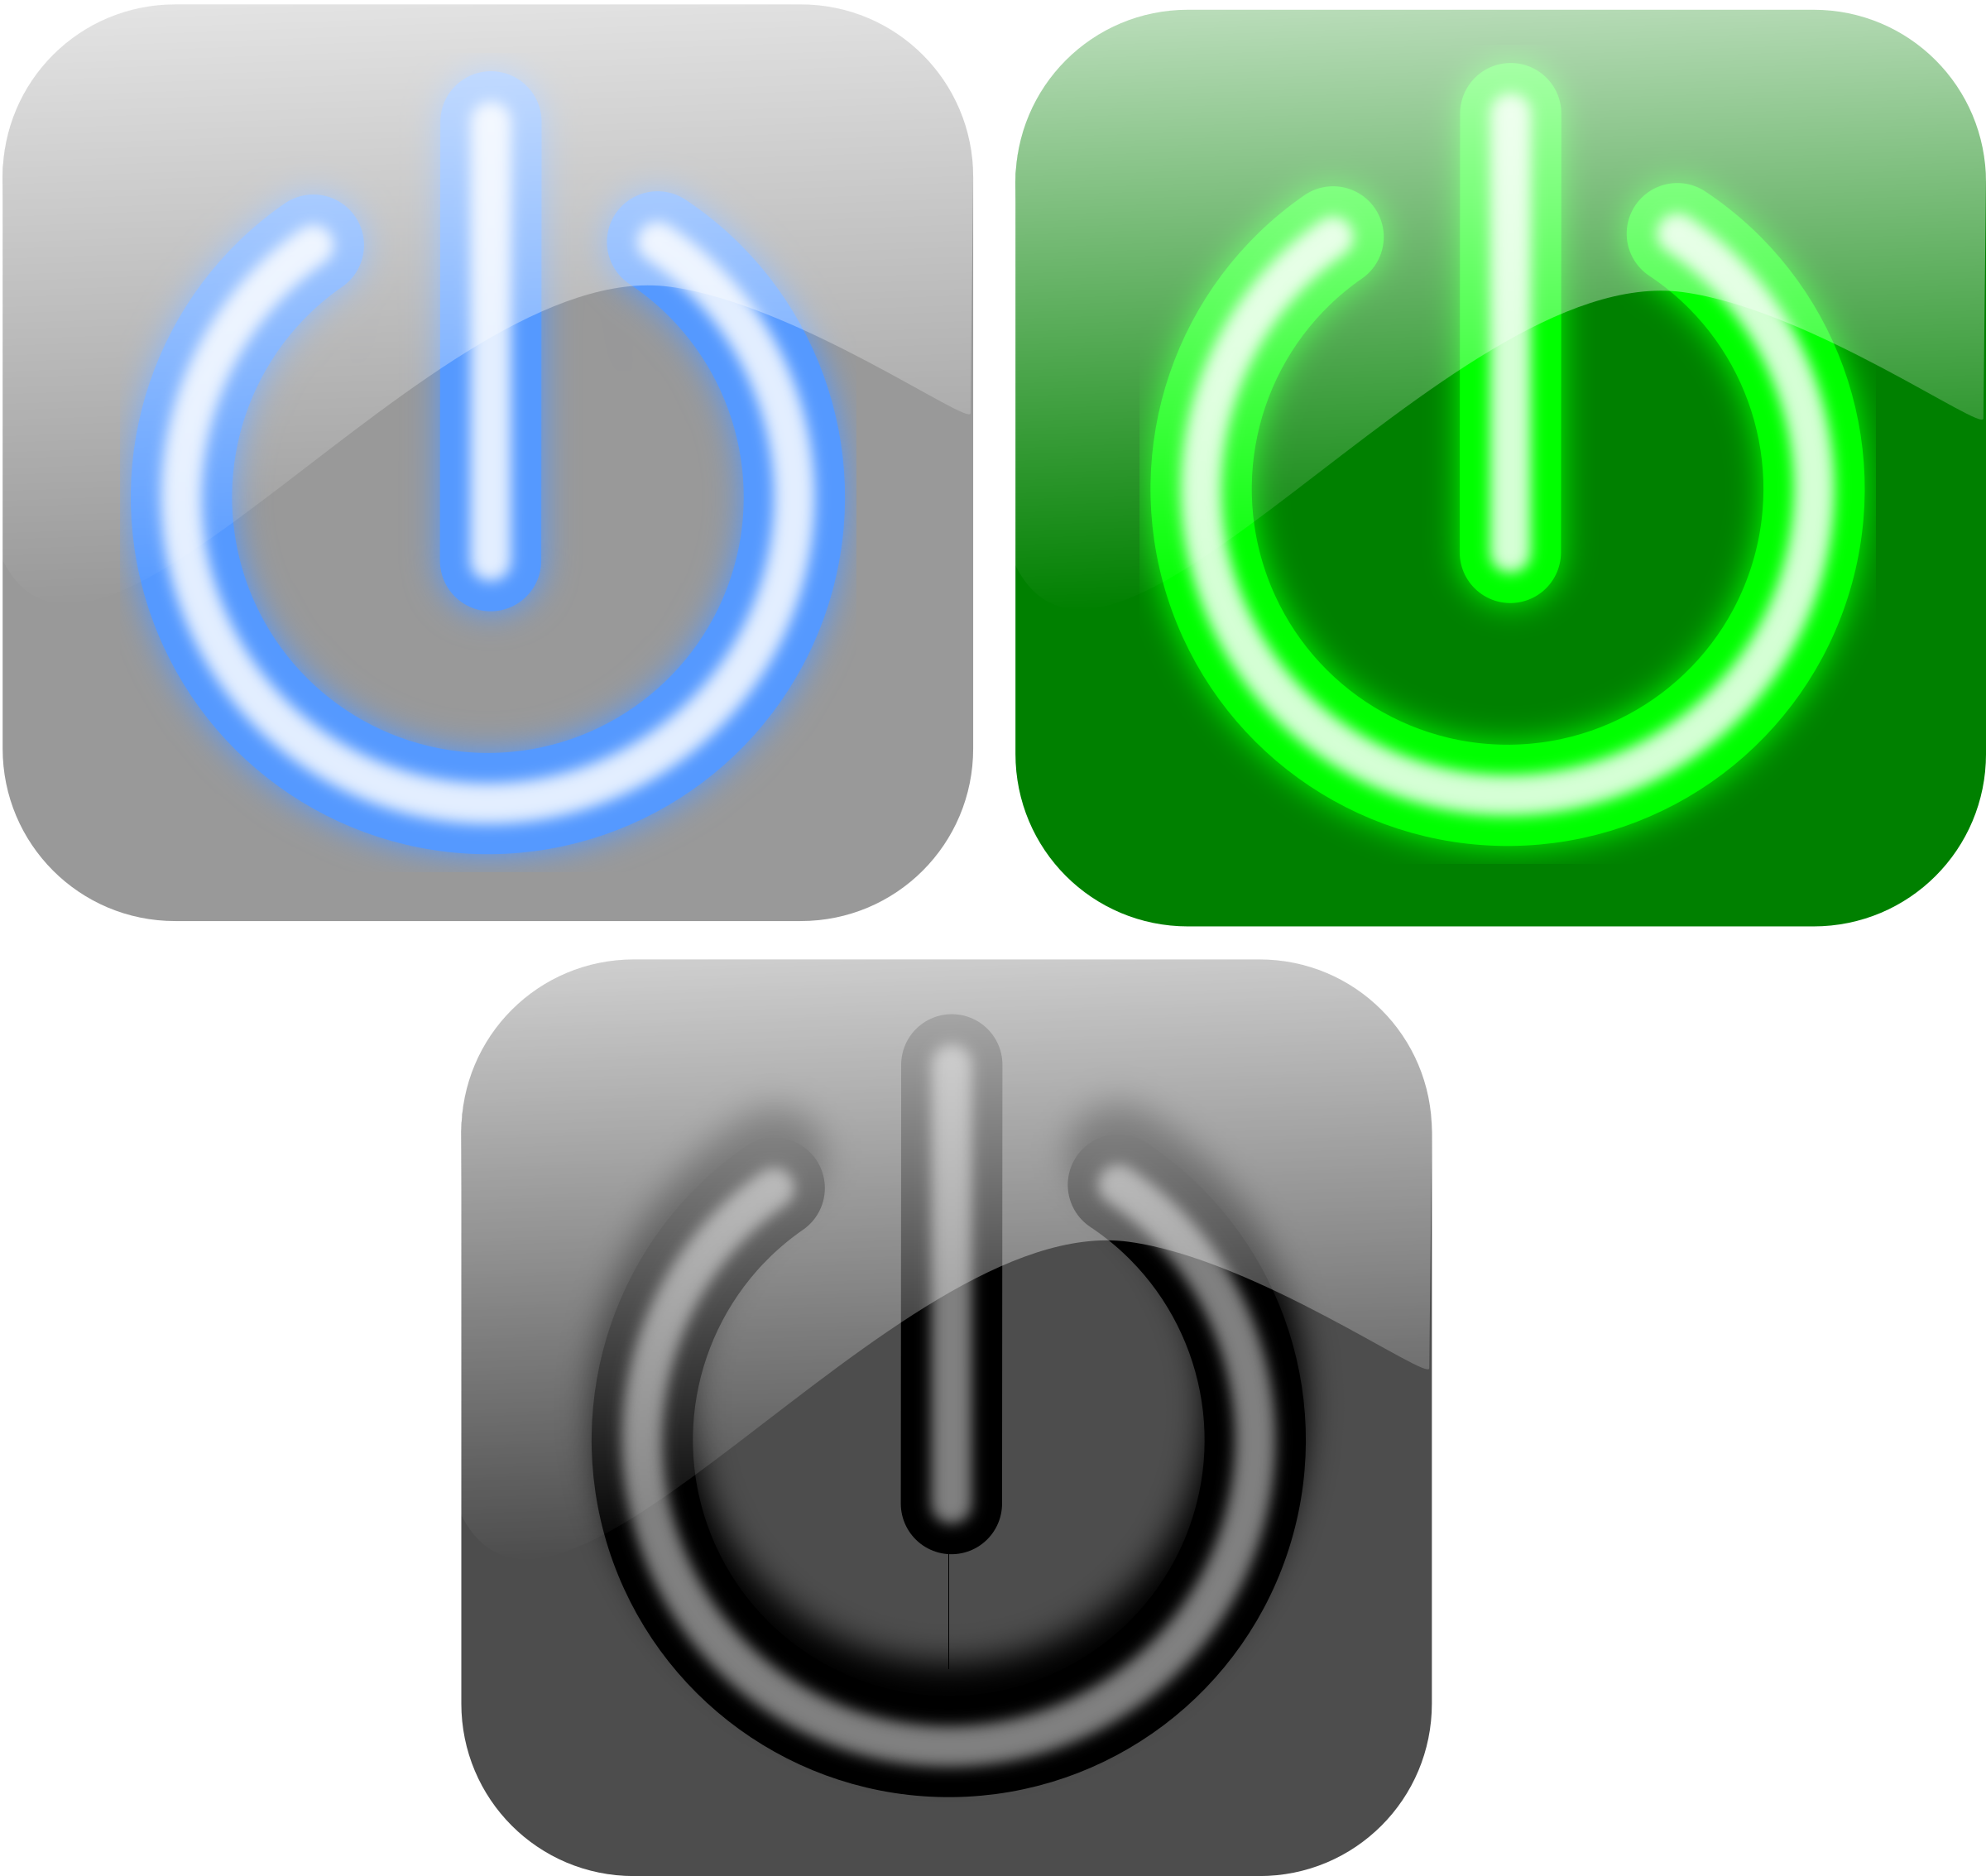 Tech buttons png. Turn off button icons